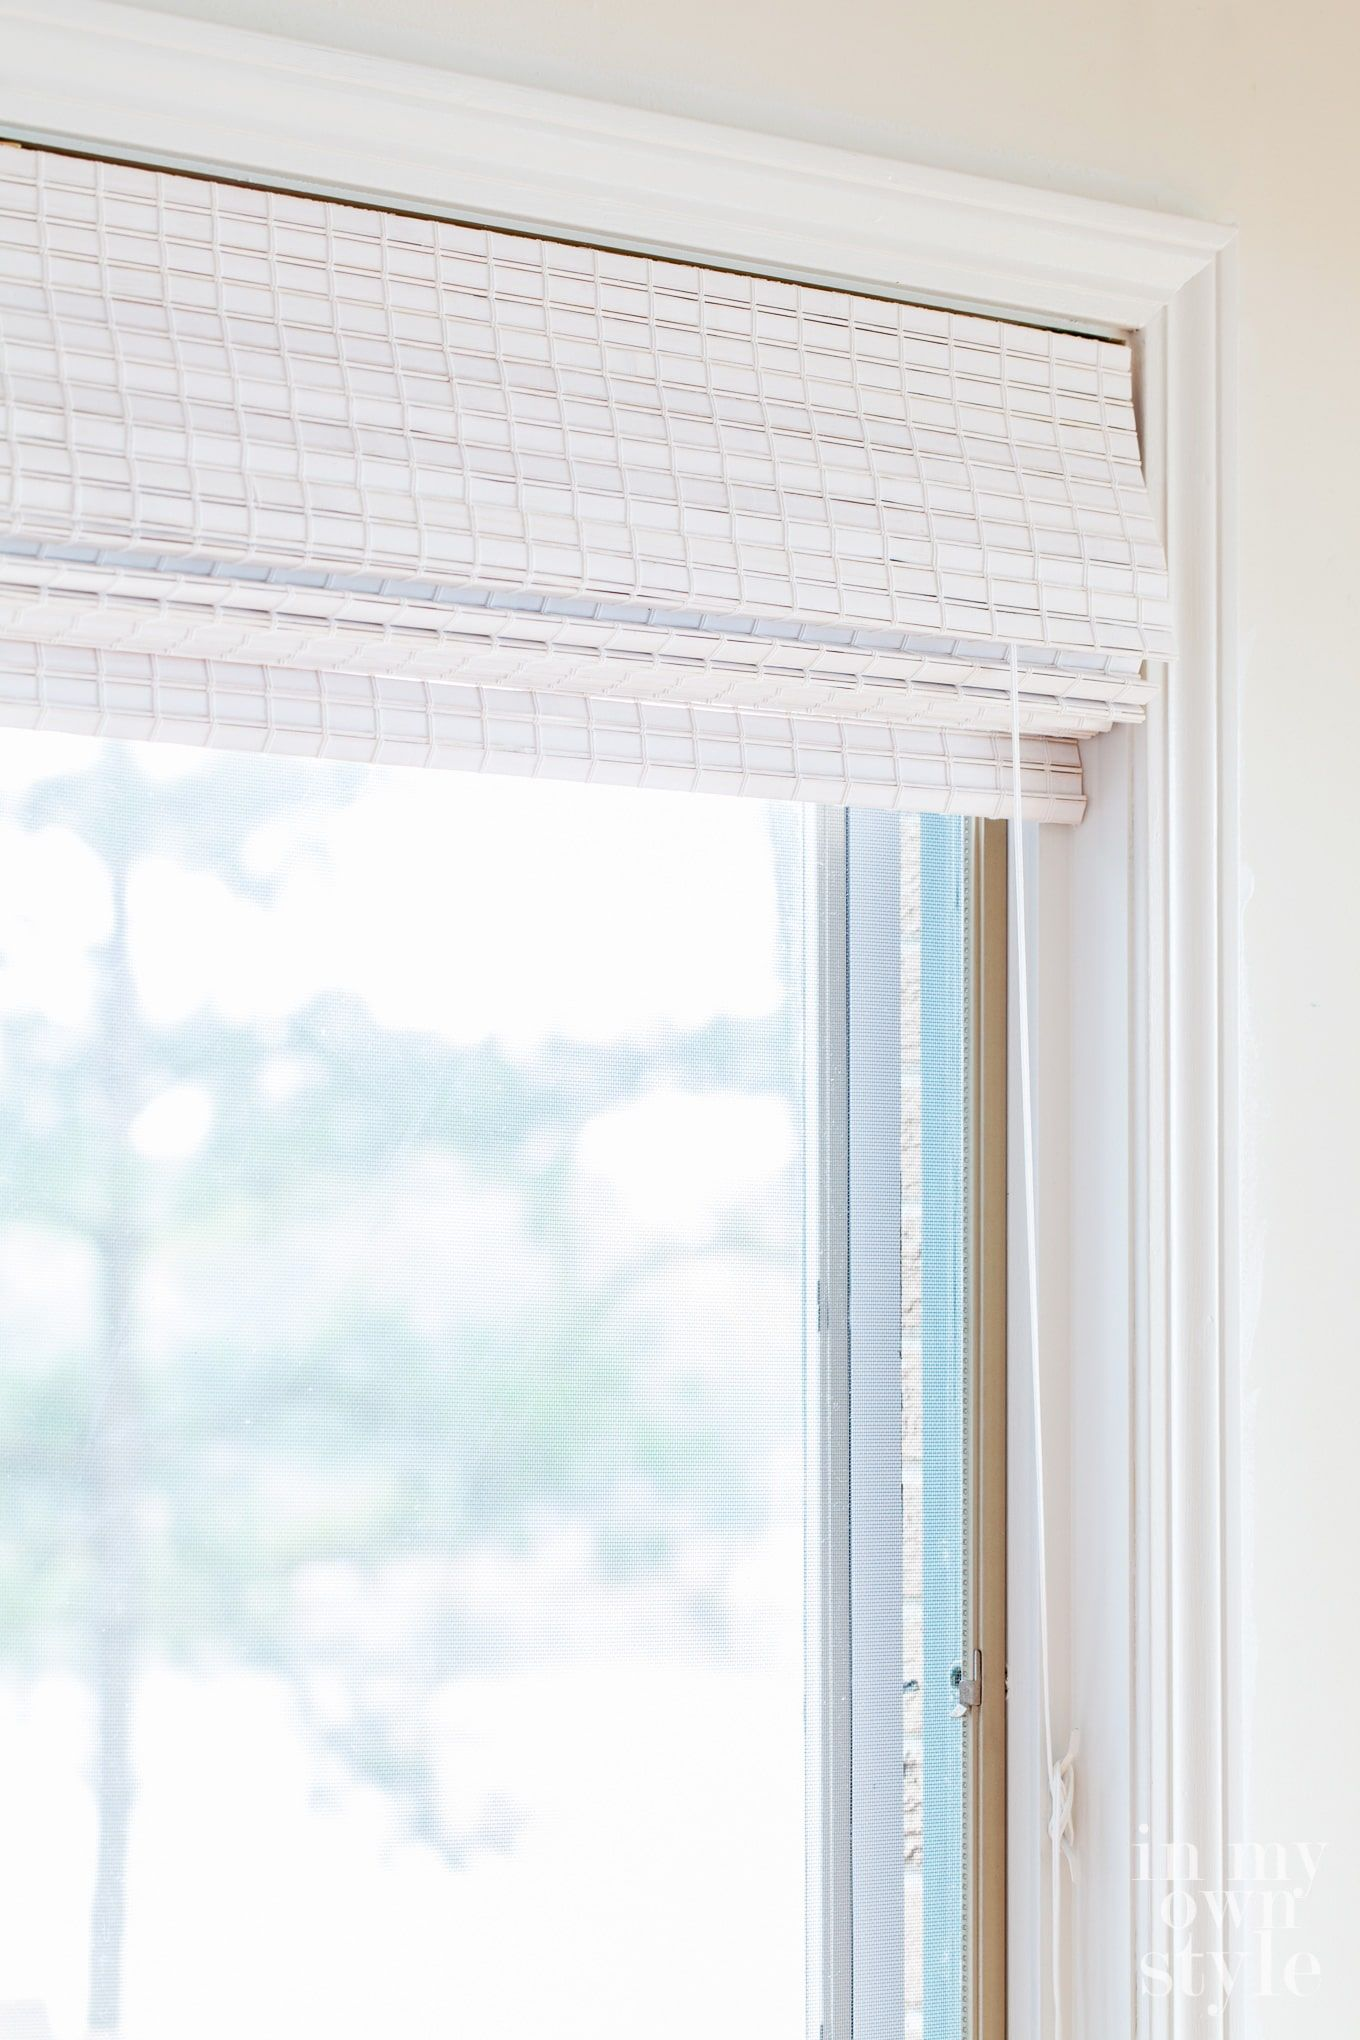 Affordable Window Shade Options For The Kitchen Bamboo Window Shades Window Shades Affordable Windows